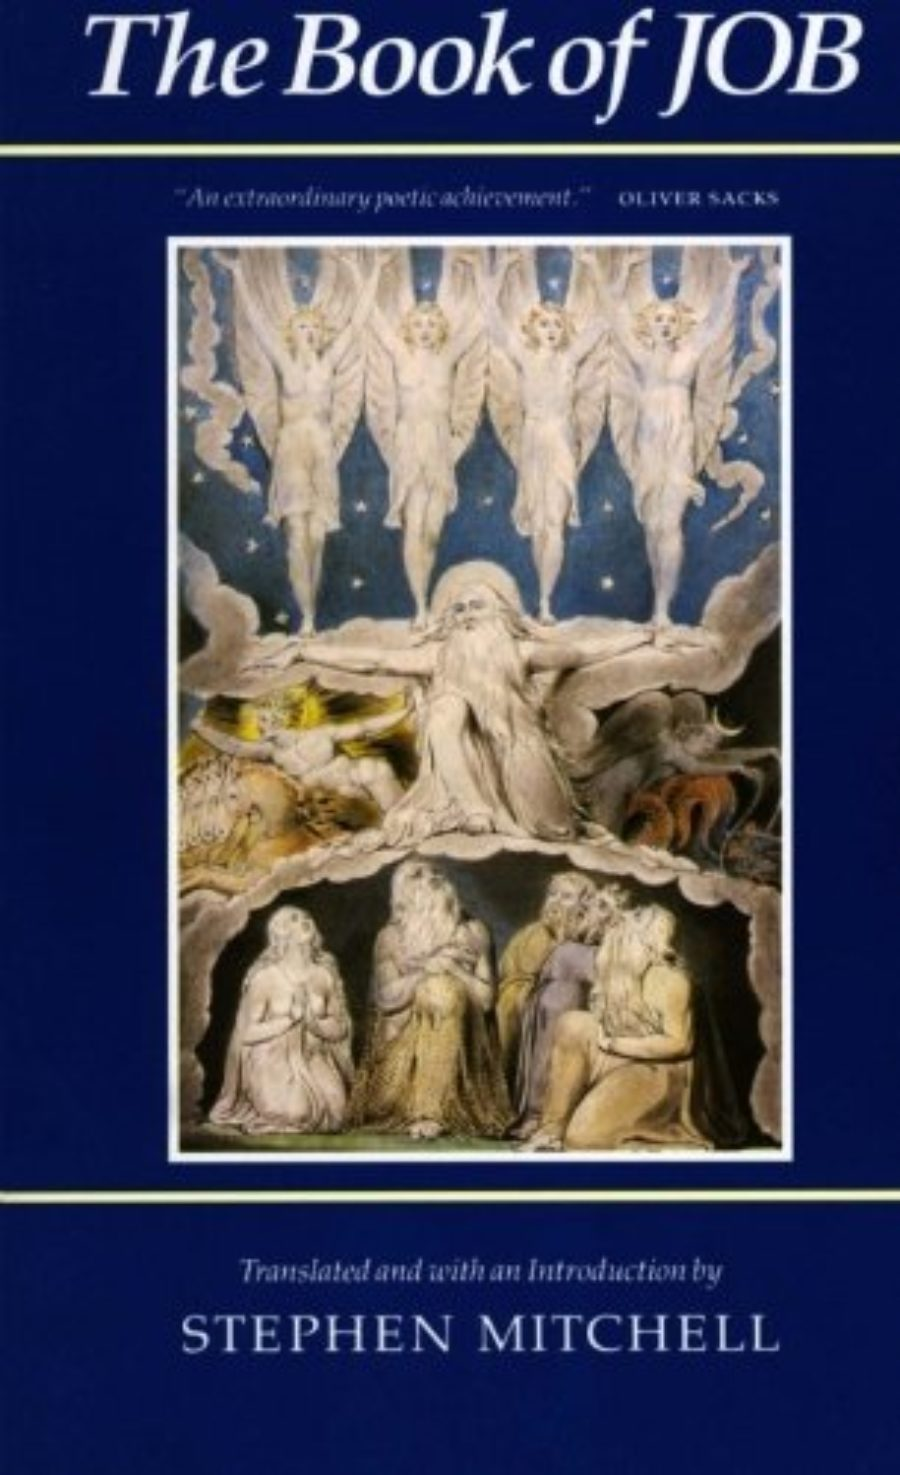 Cover of The BOOK OF JOB